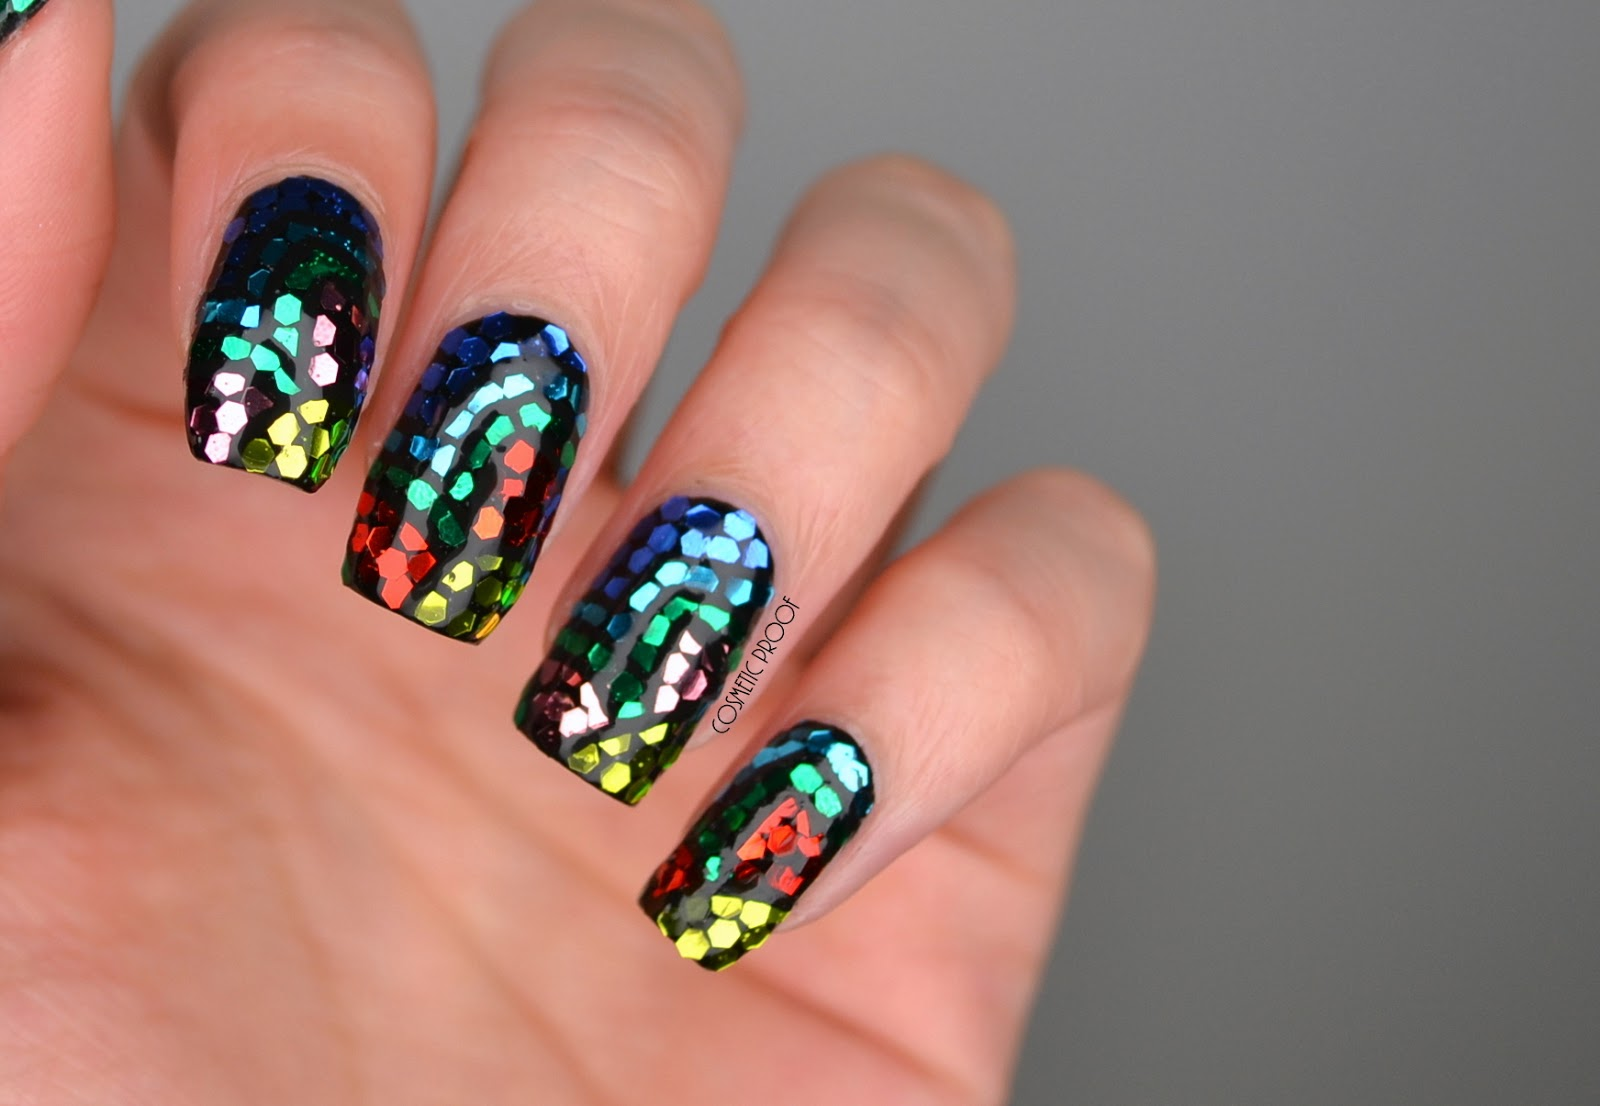 NAILS | BCD NAIL ART Challenge Week 4 - Mosaic Stained Glass Flowers ...